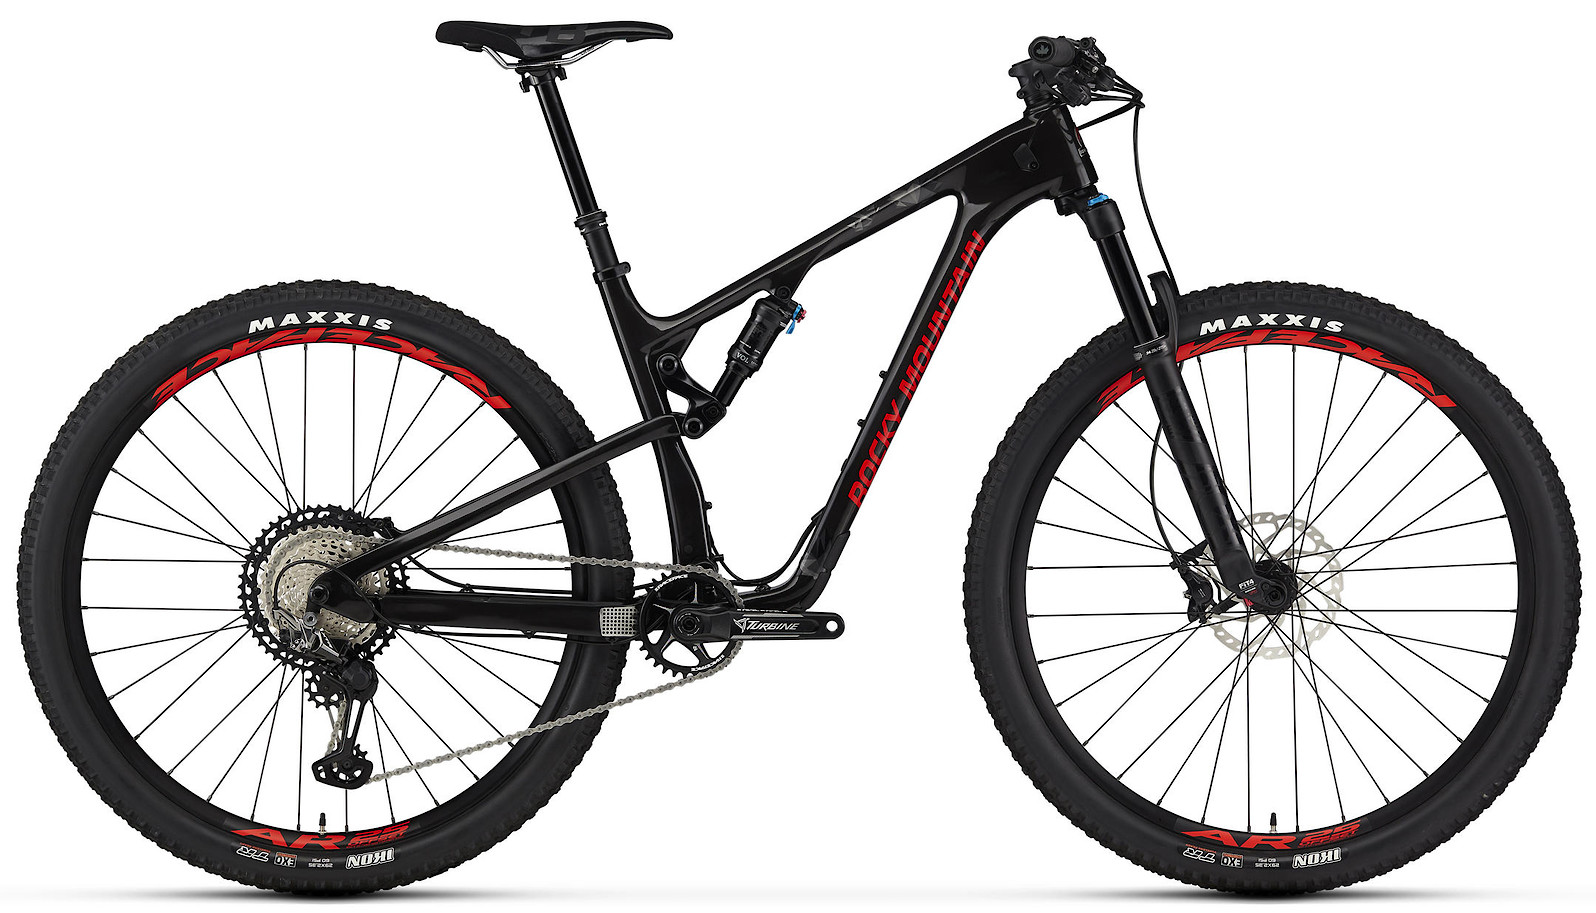 s1600_2020_rocky_mountain_element_carbon_70_black_and_red